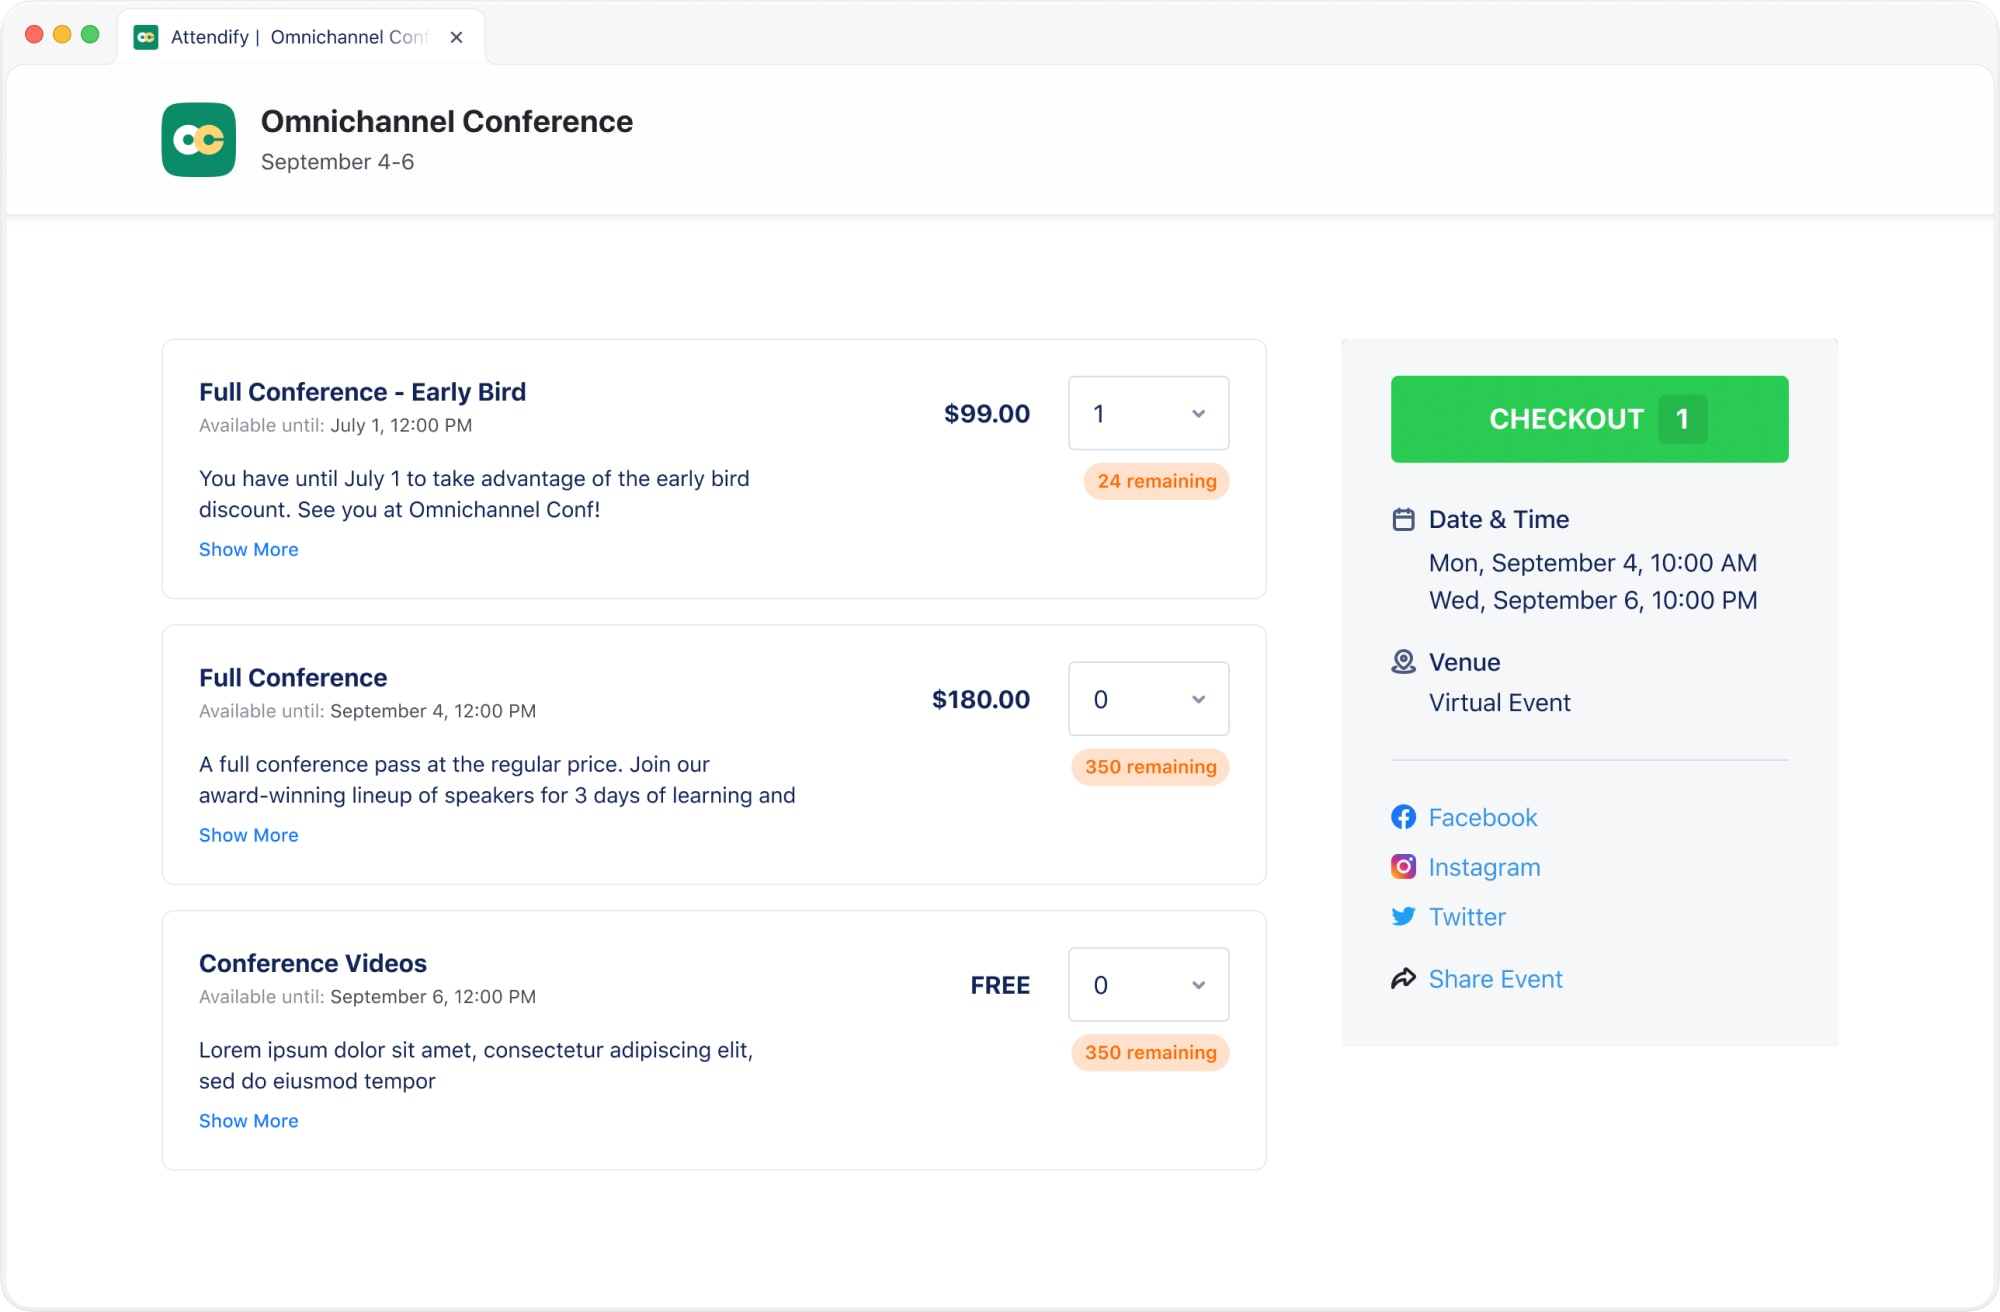 Attendify supports paid and free event registration types